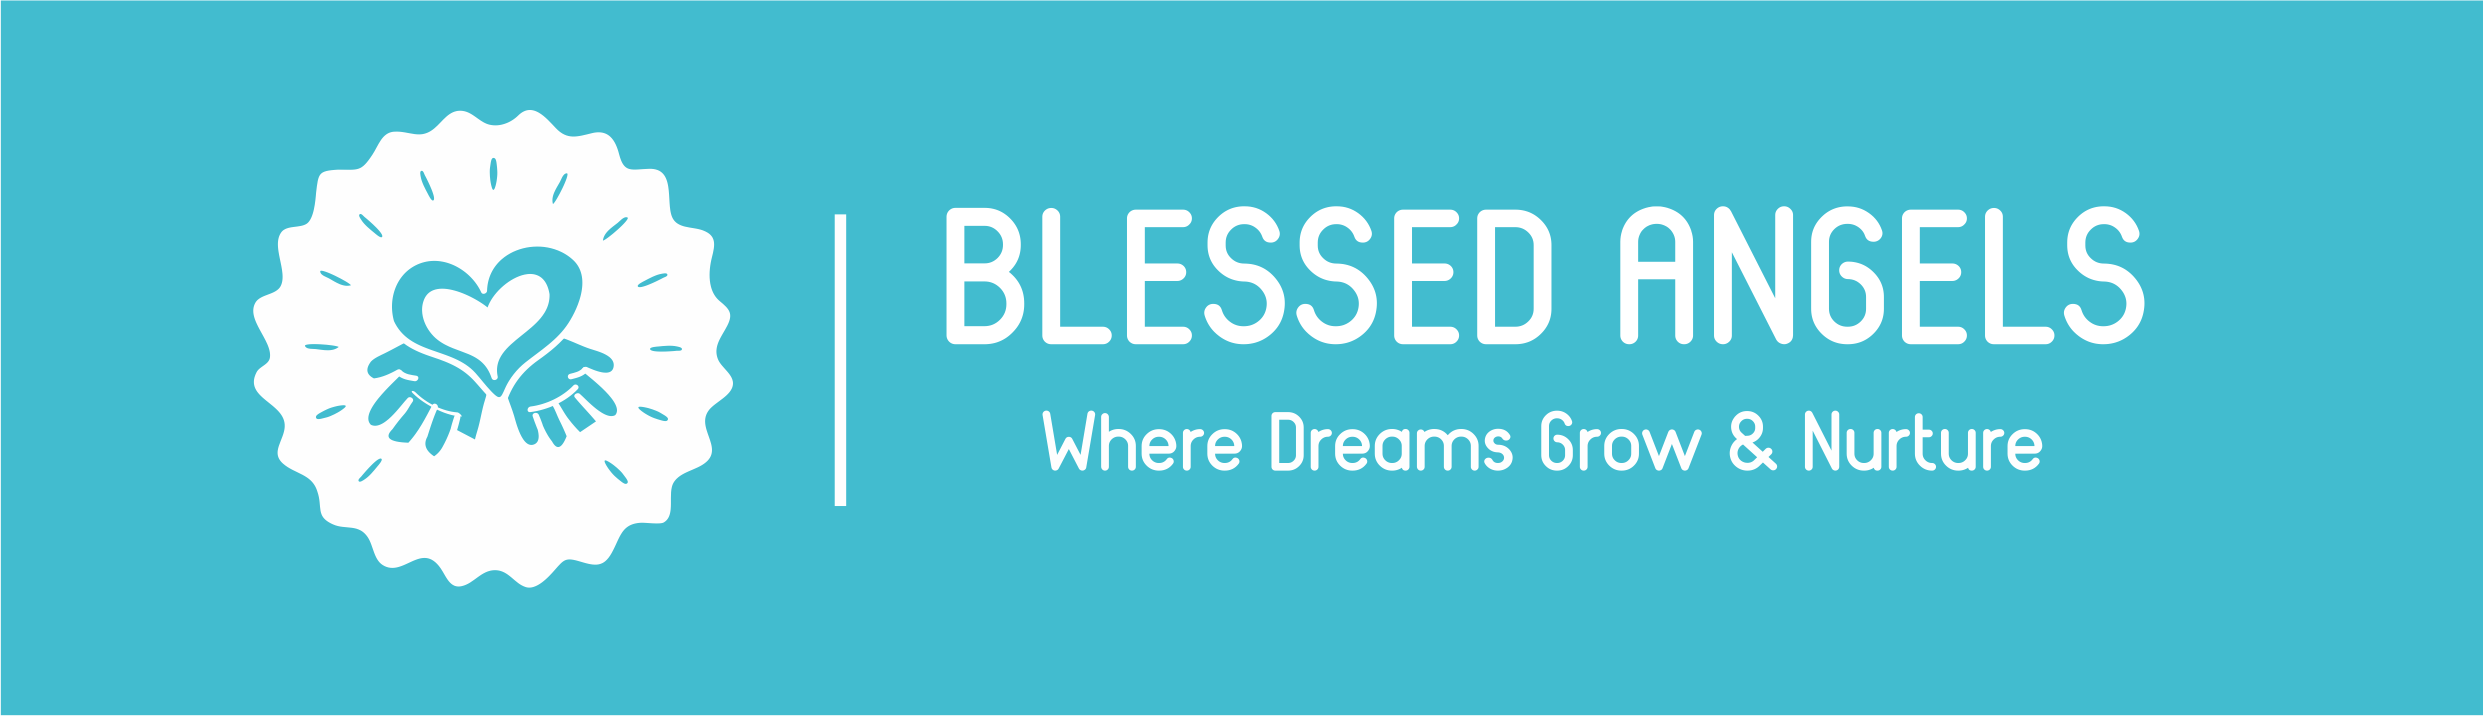 Blessed Angels Job Openings